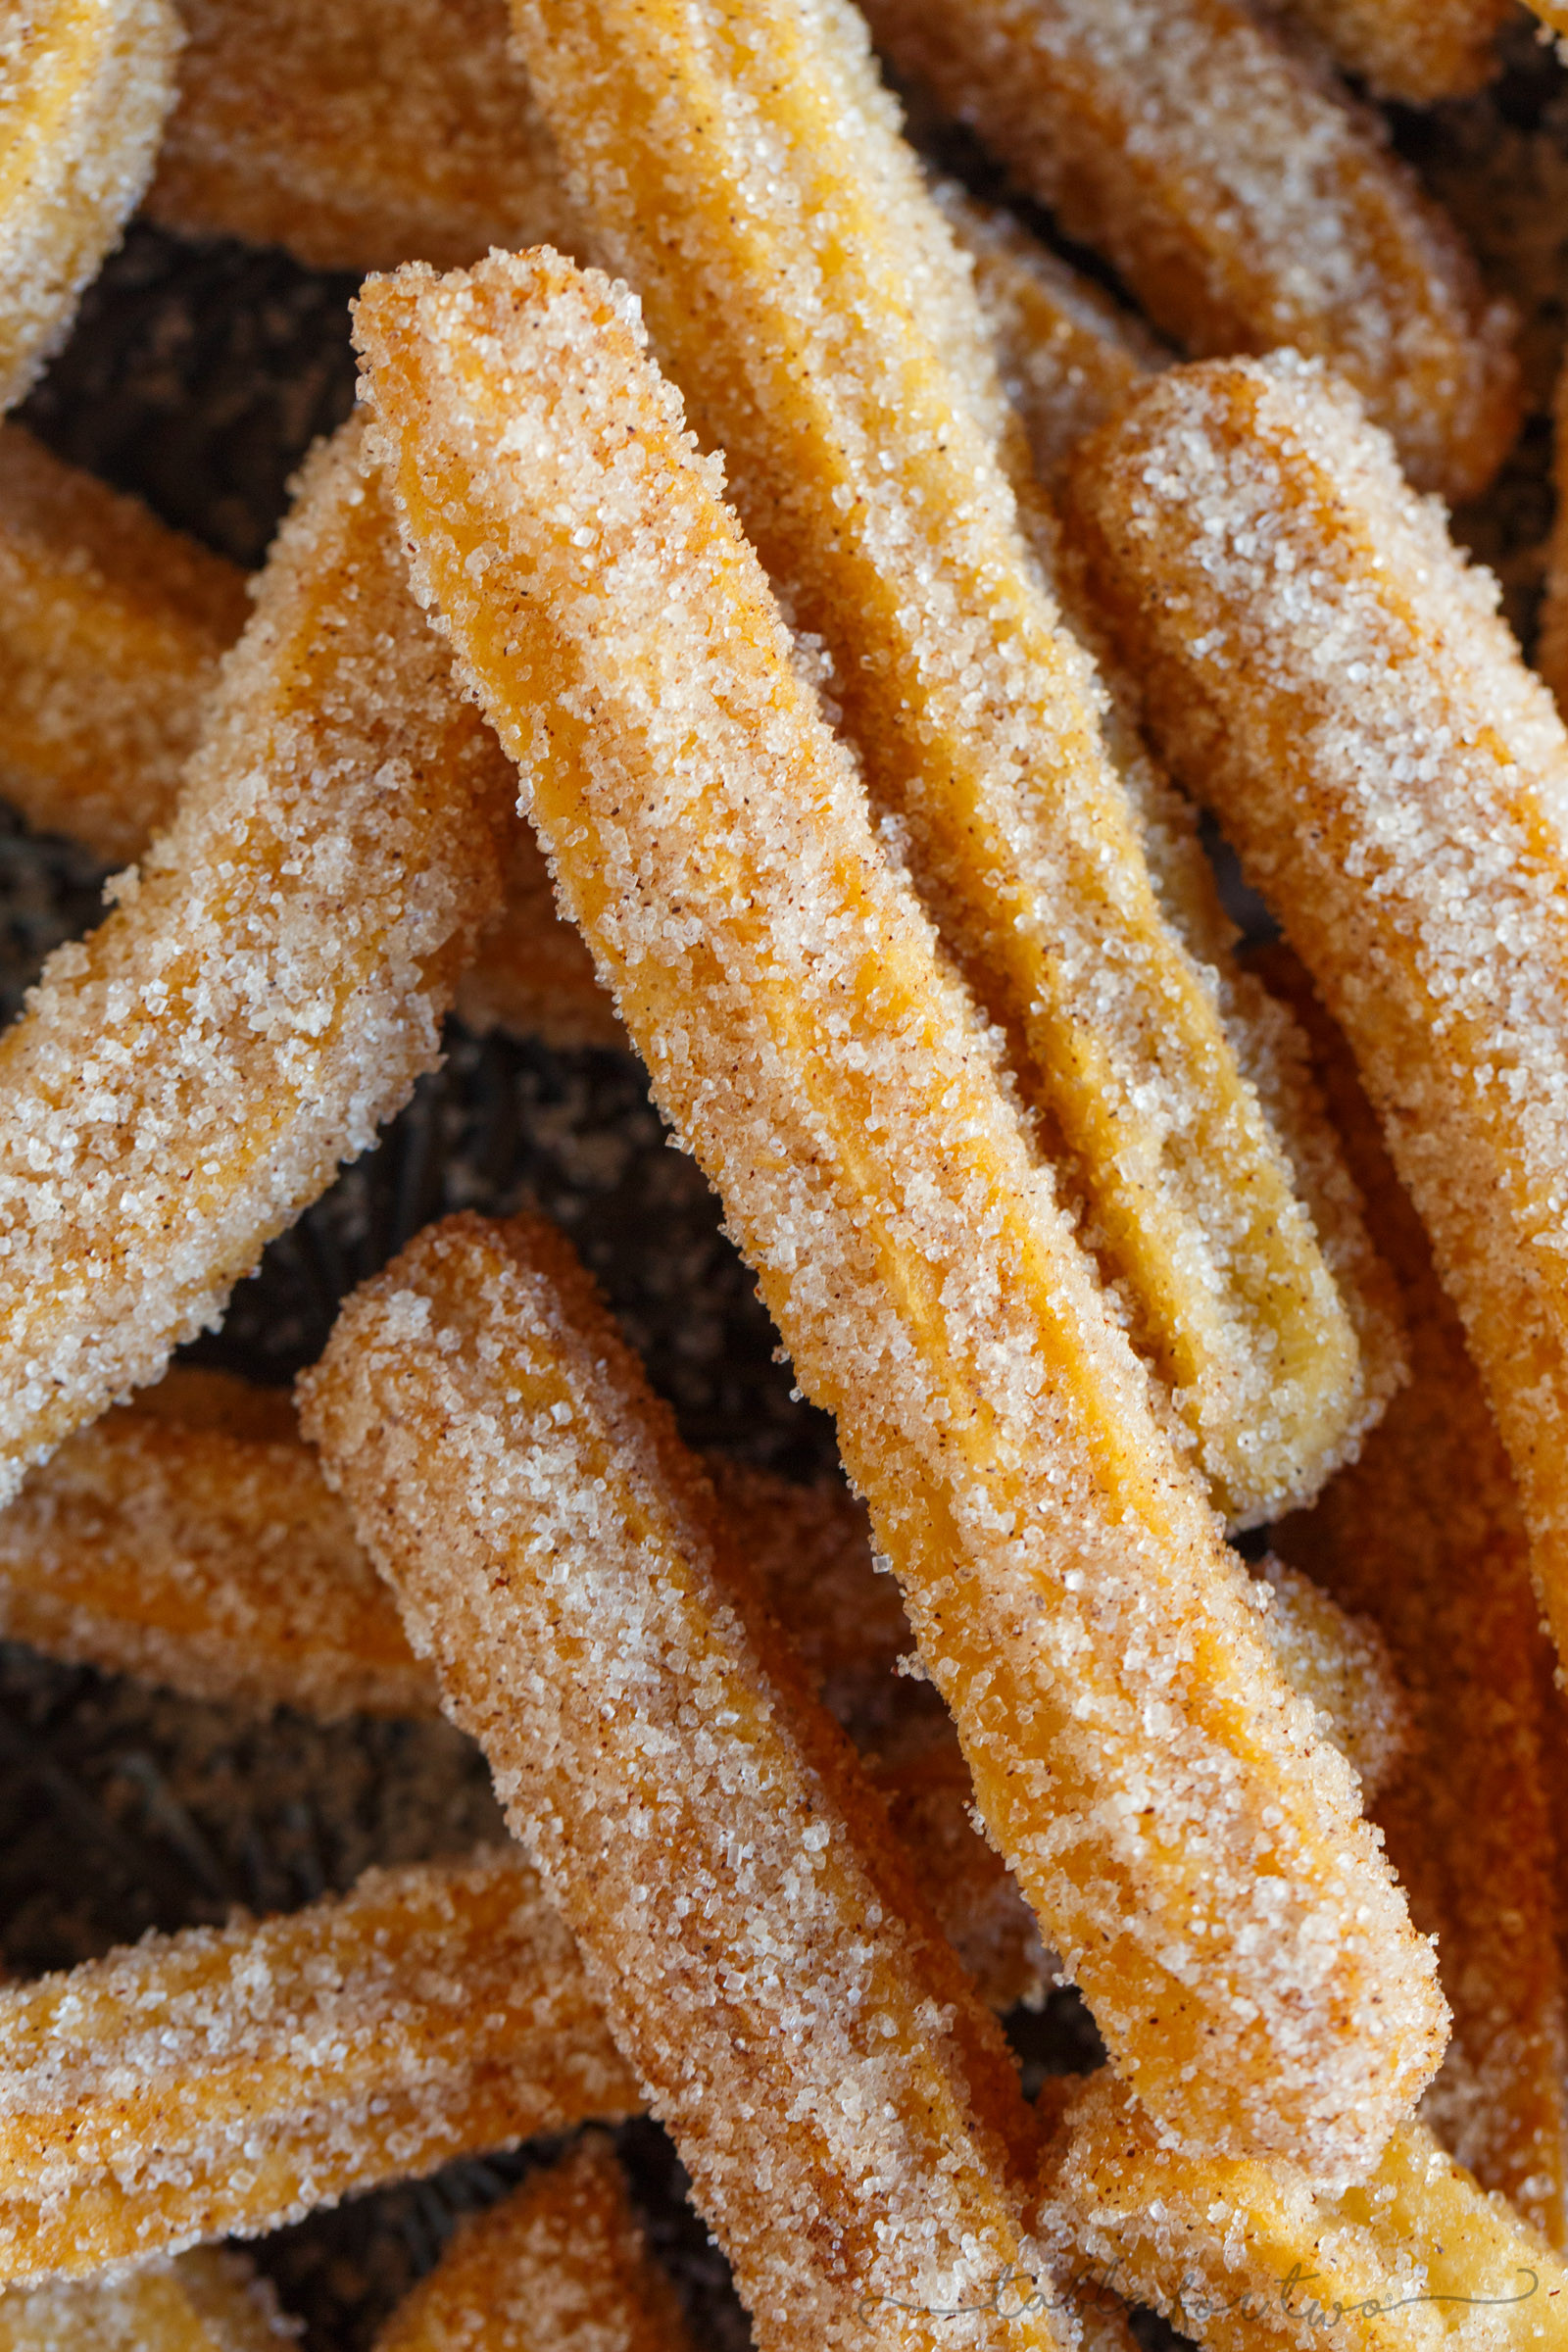 Mexican Desserts Churros  Homemade Mexican Churros Table for Two by Julie Wampler